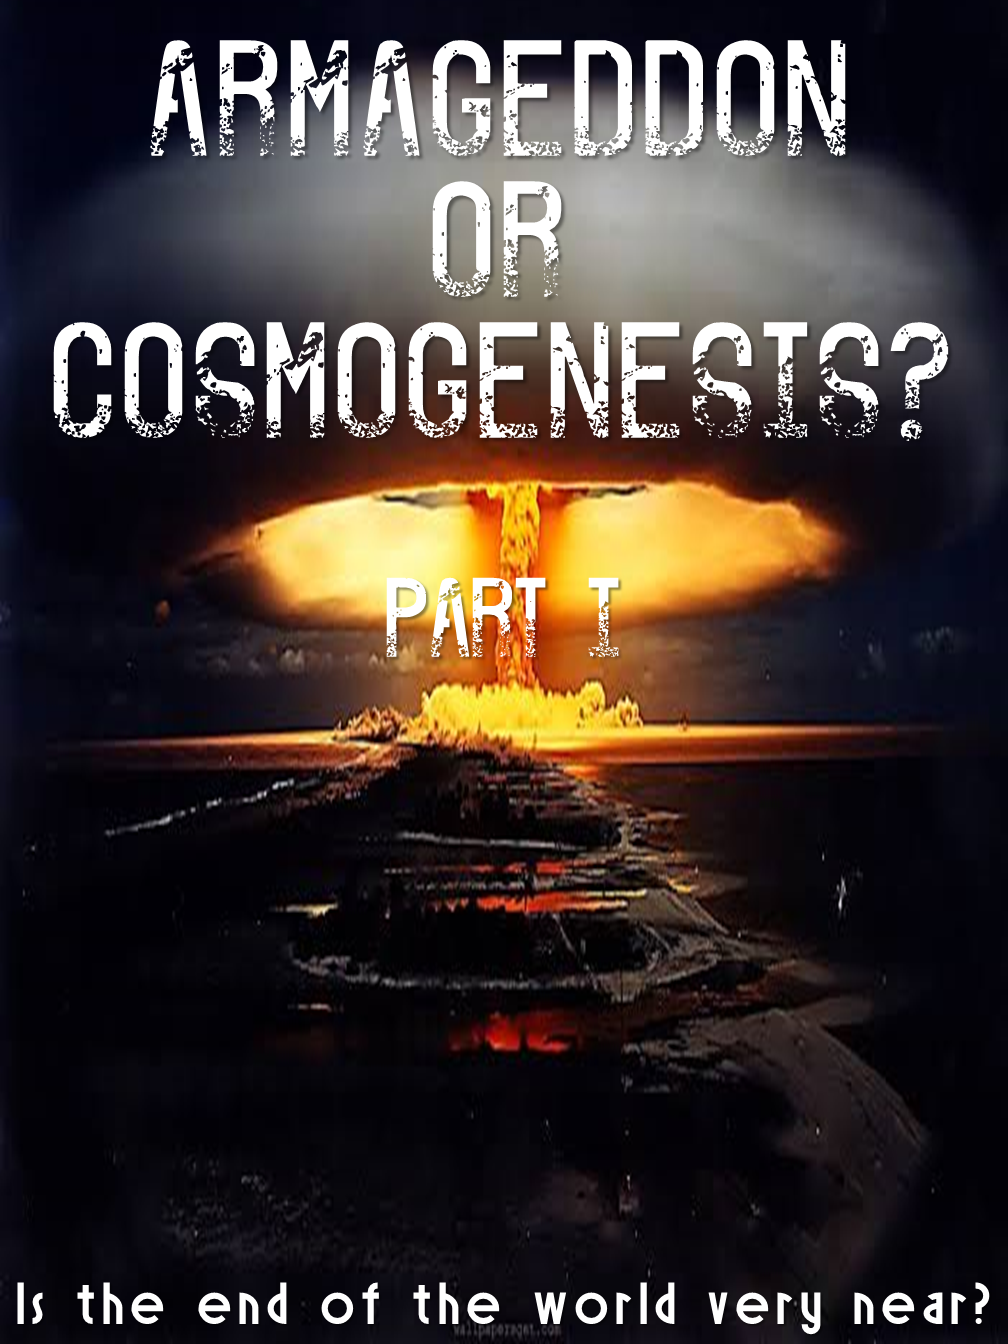 Armageddon or Cosmogenesis Part 1